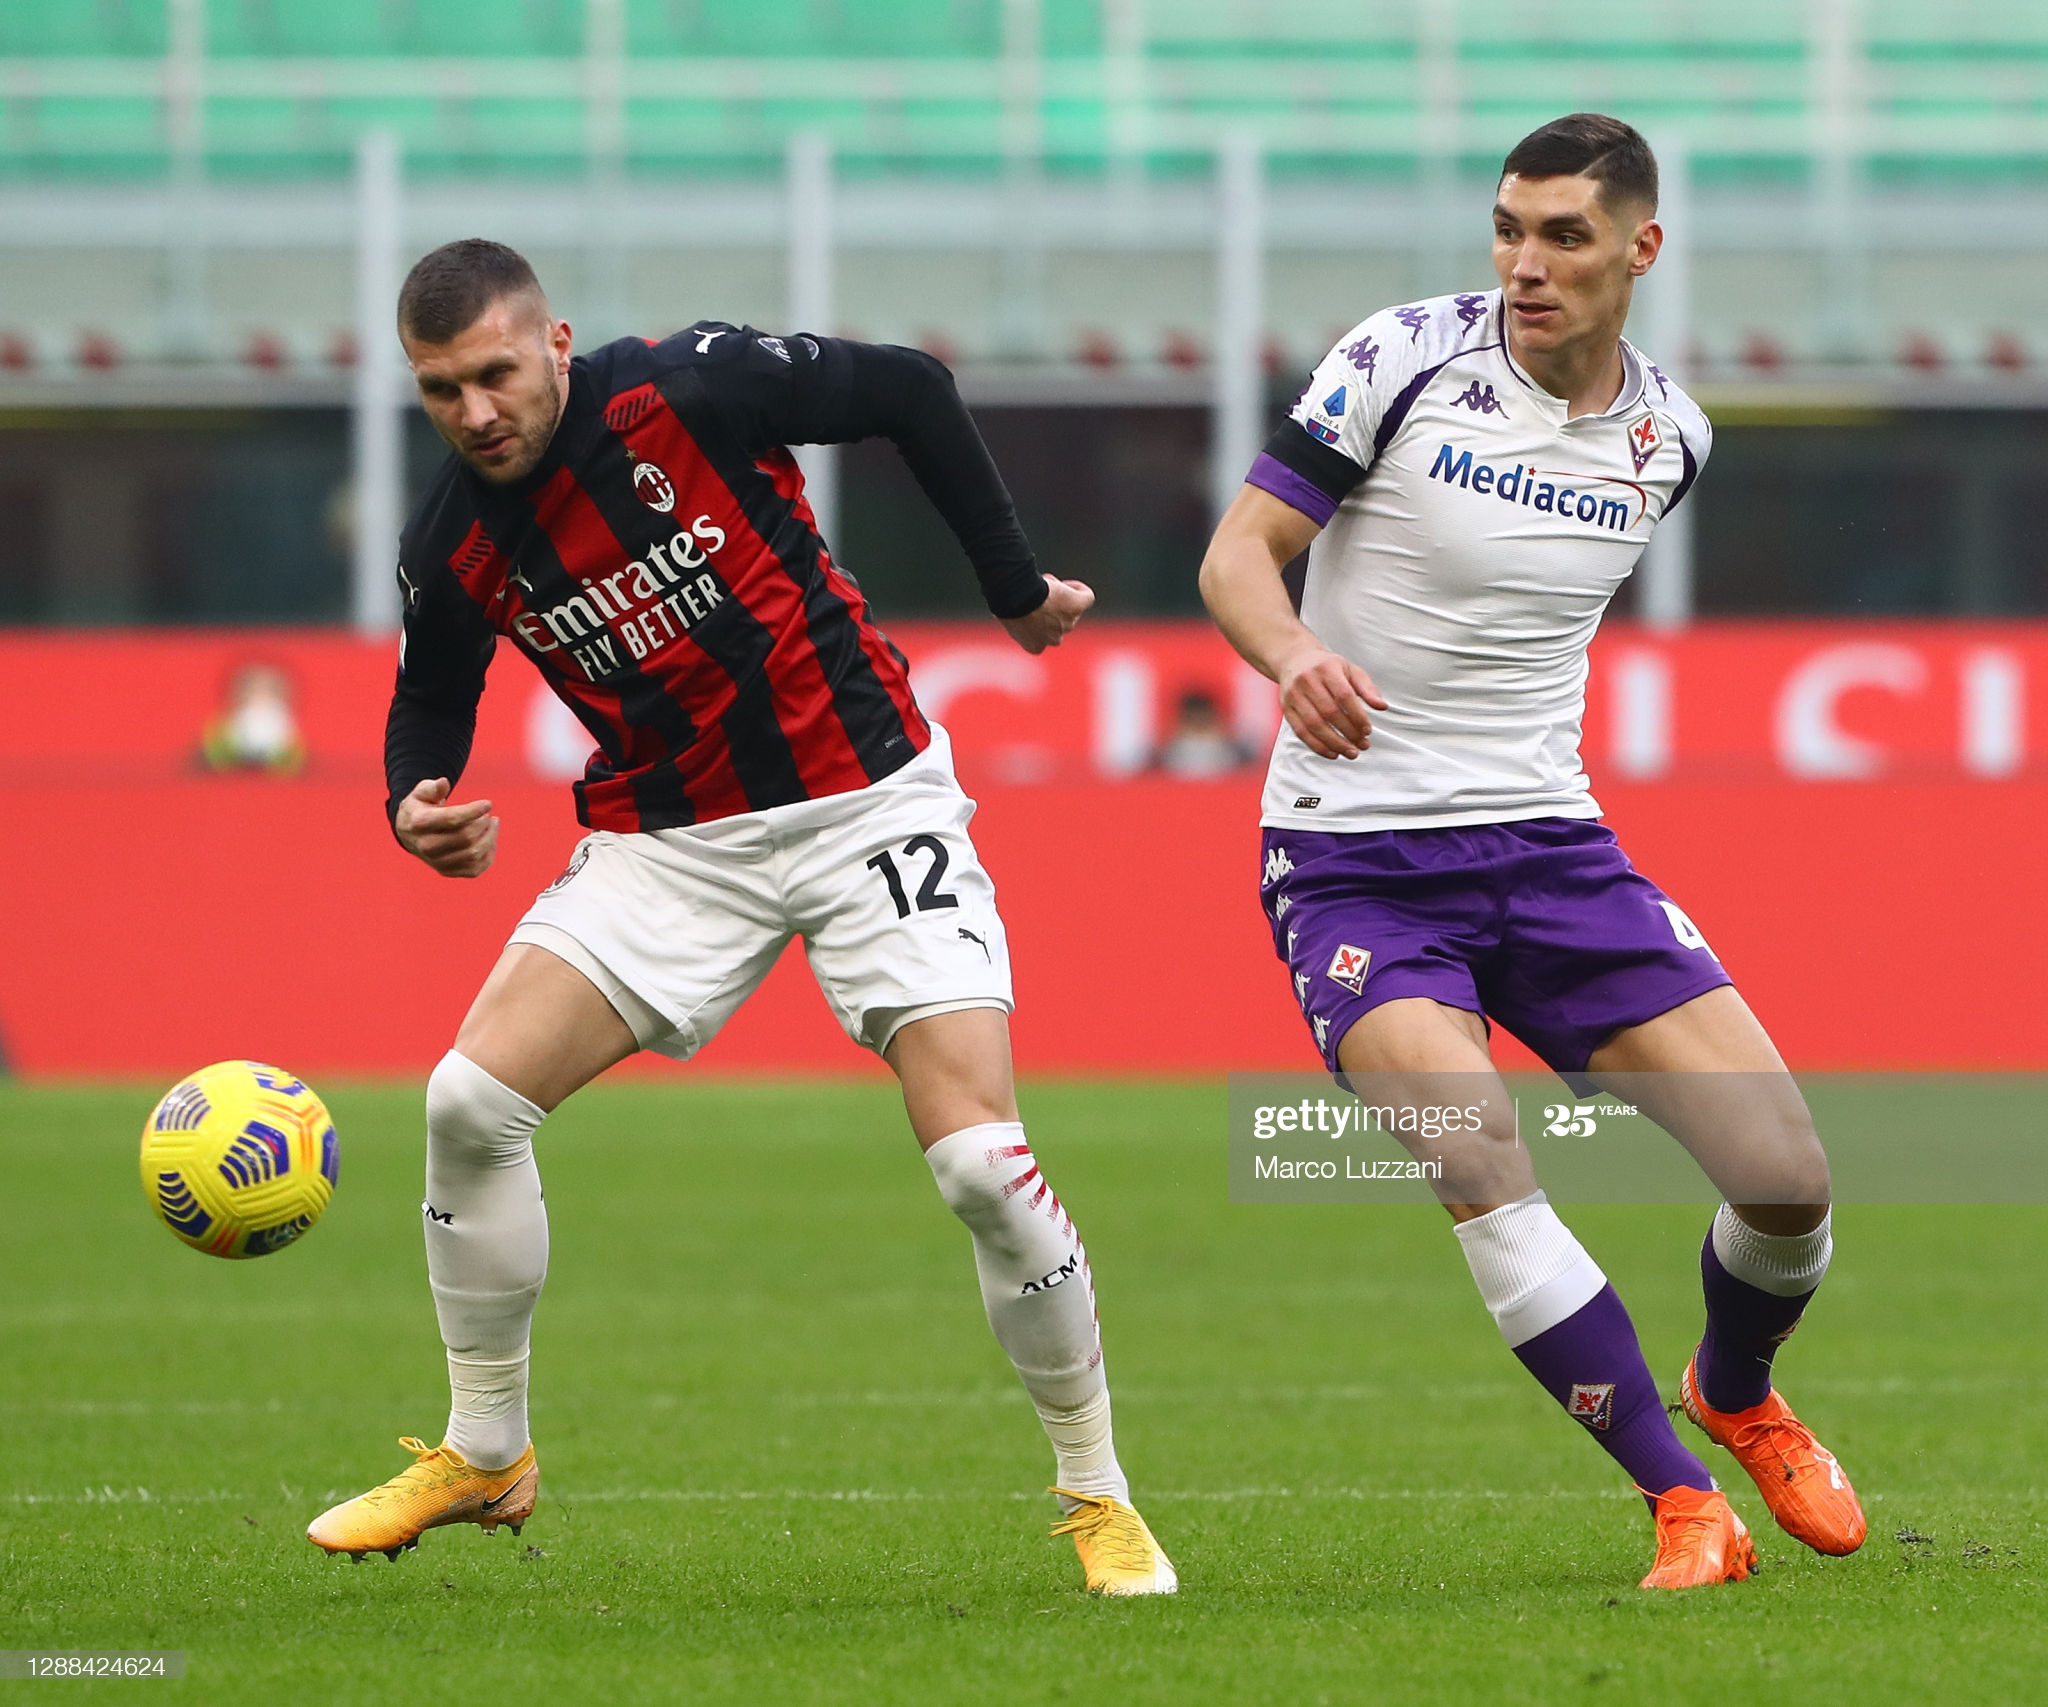 Genoa fiorentina betting preview how to bet on boxing fights online